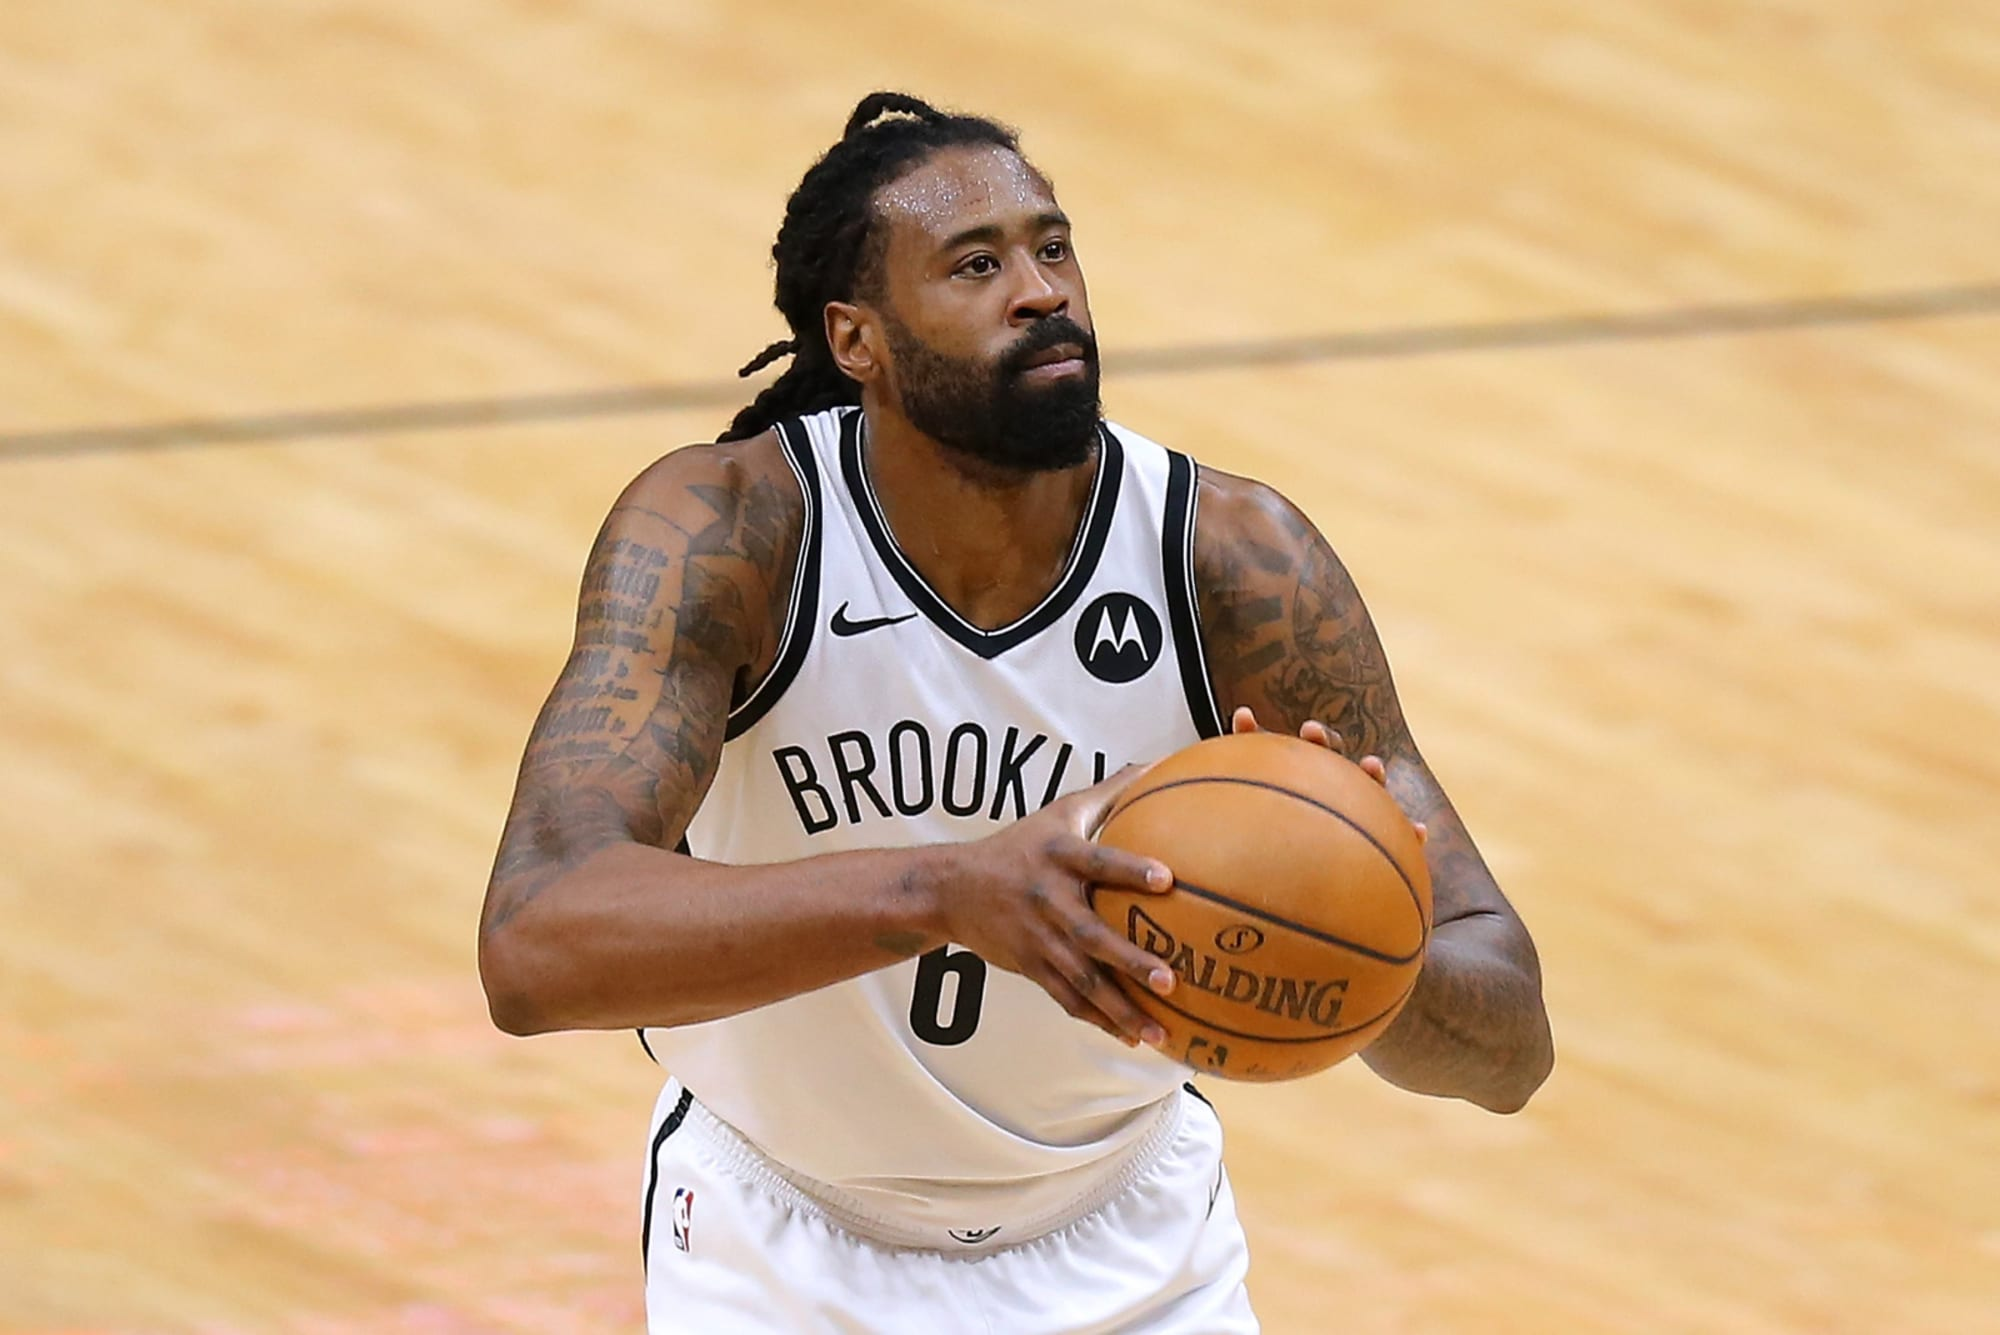 This Nets-Grizzlies trade could help BK lose DeAndre Jordan's contract